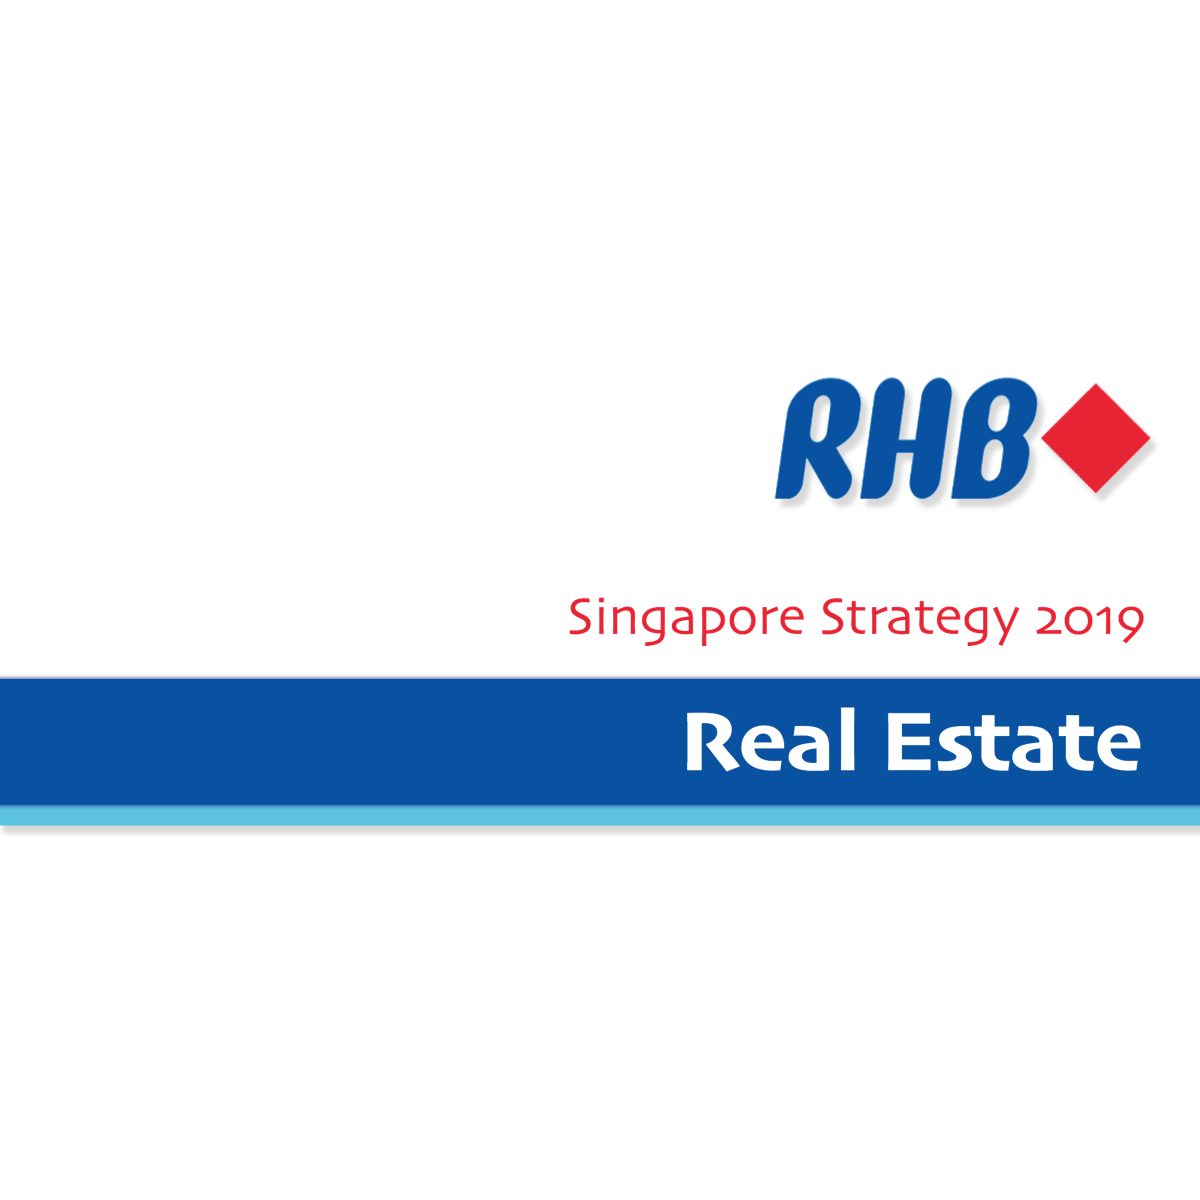 Real Estate Sector - RHB Invest Research | SGinvestors.io